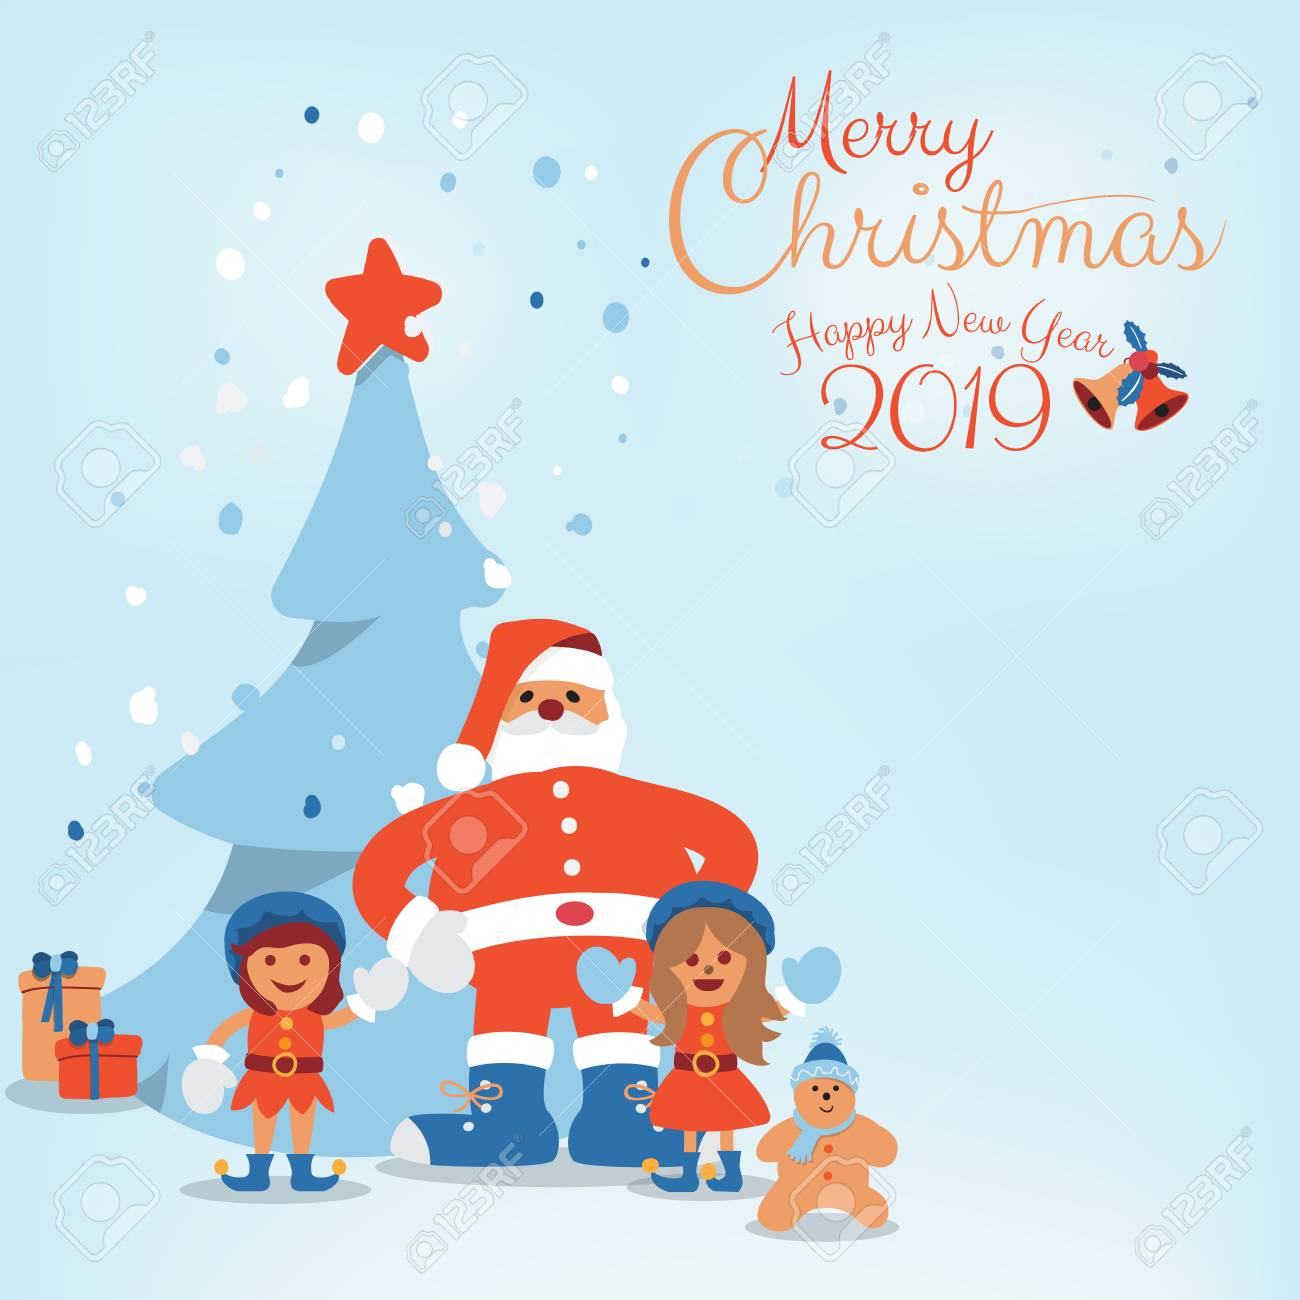 Cute Cartoon Character Of Santa Clause Kids Candy Cookie And Royalty Free Cliparts Vectors And Stock Illustration Image 127340150 Here's a christmas tree tutorial we found at drawing how to but this one includes some packages at the foot of it all. 123rf com